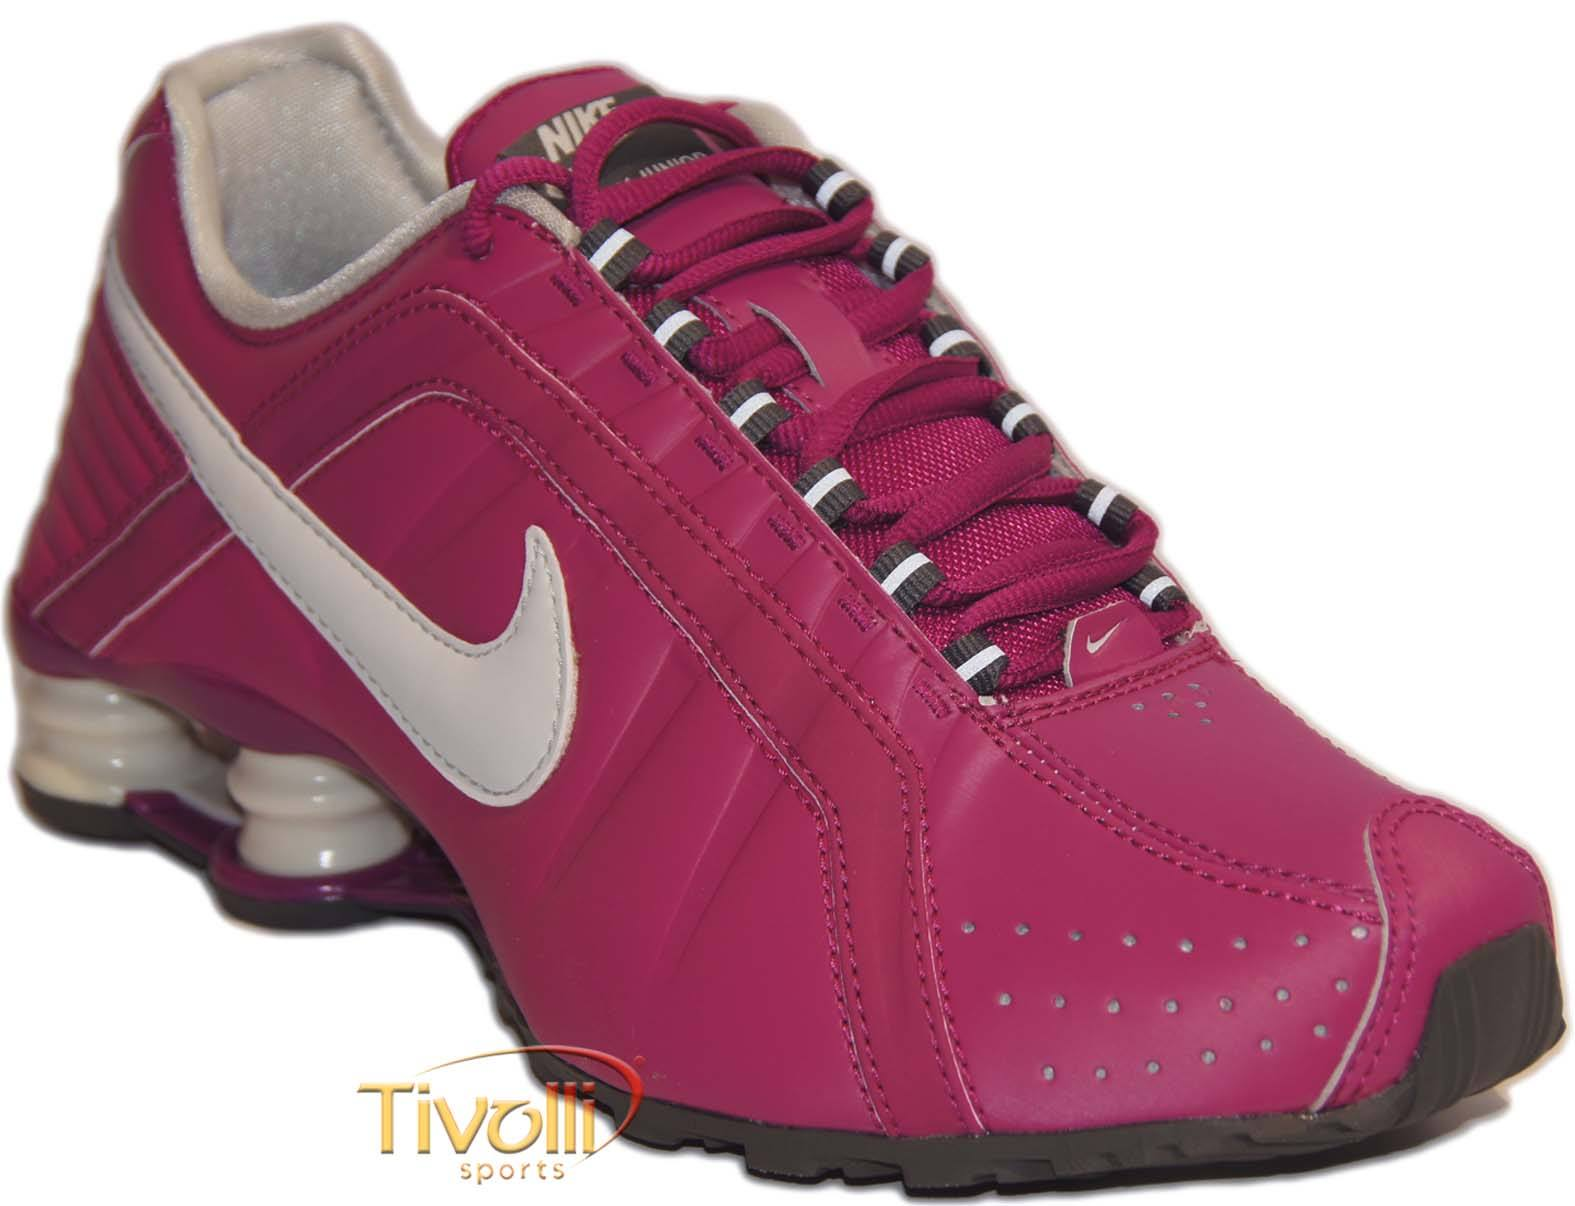 check out 5e331 8581c ... good nike shox junior pink 21c6d 5e302